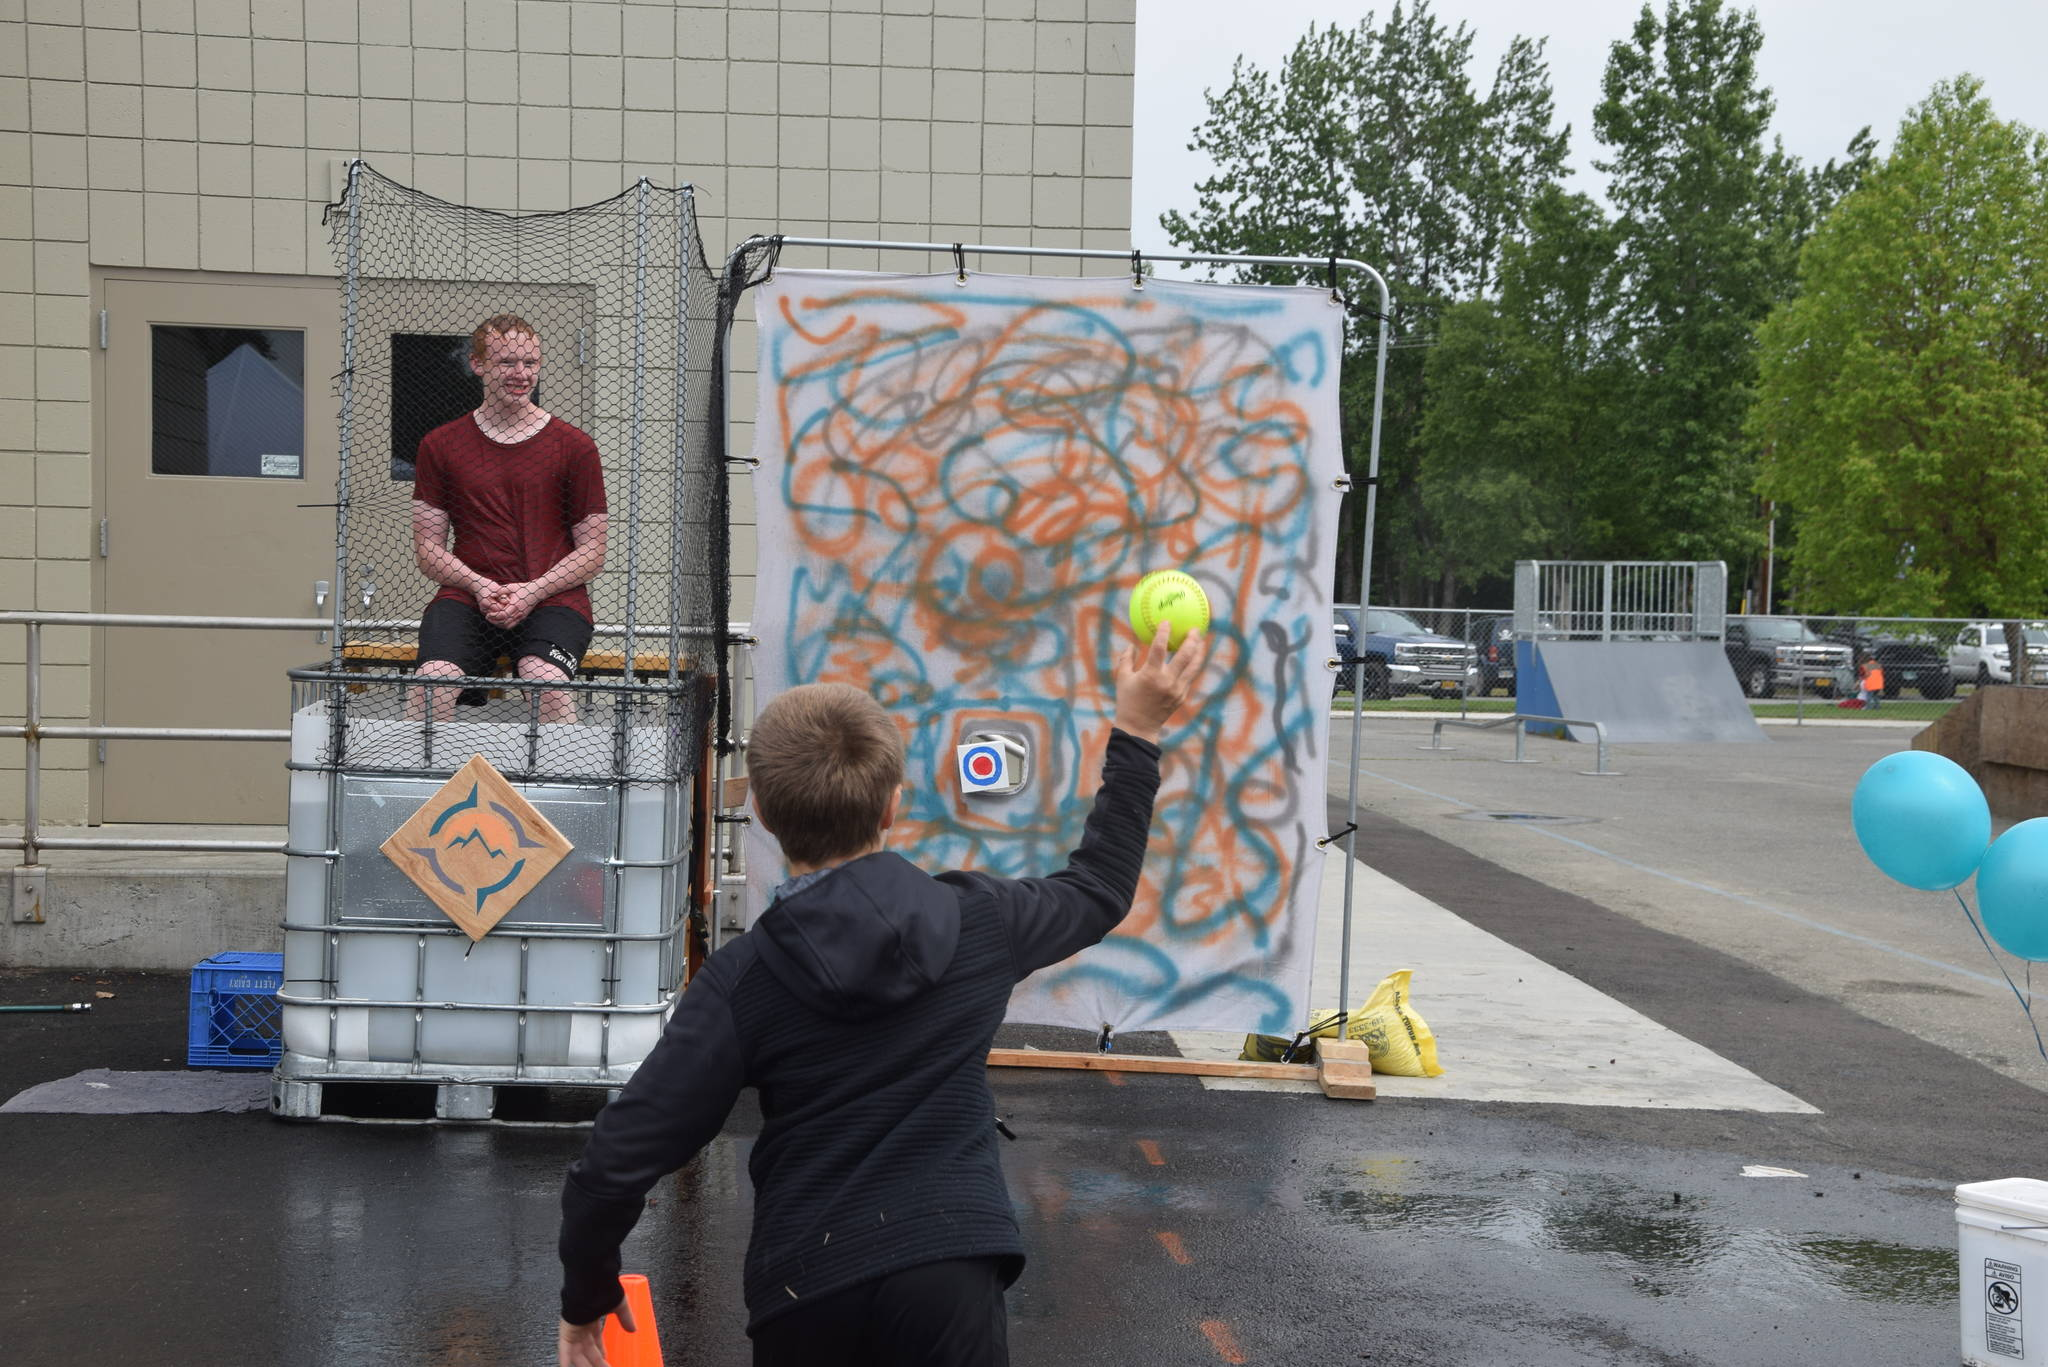 A boy tries his hand at the Compass Dunk Tank during the Family Fun in the Midnight Sun festival at the North Peninsula Recreation Center in Nikiski, Alaska on June 15, 2019. (Photo by Brian Mazurek/Peninsula Clarion)